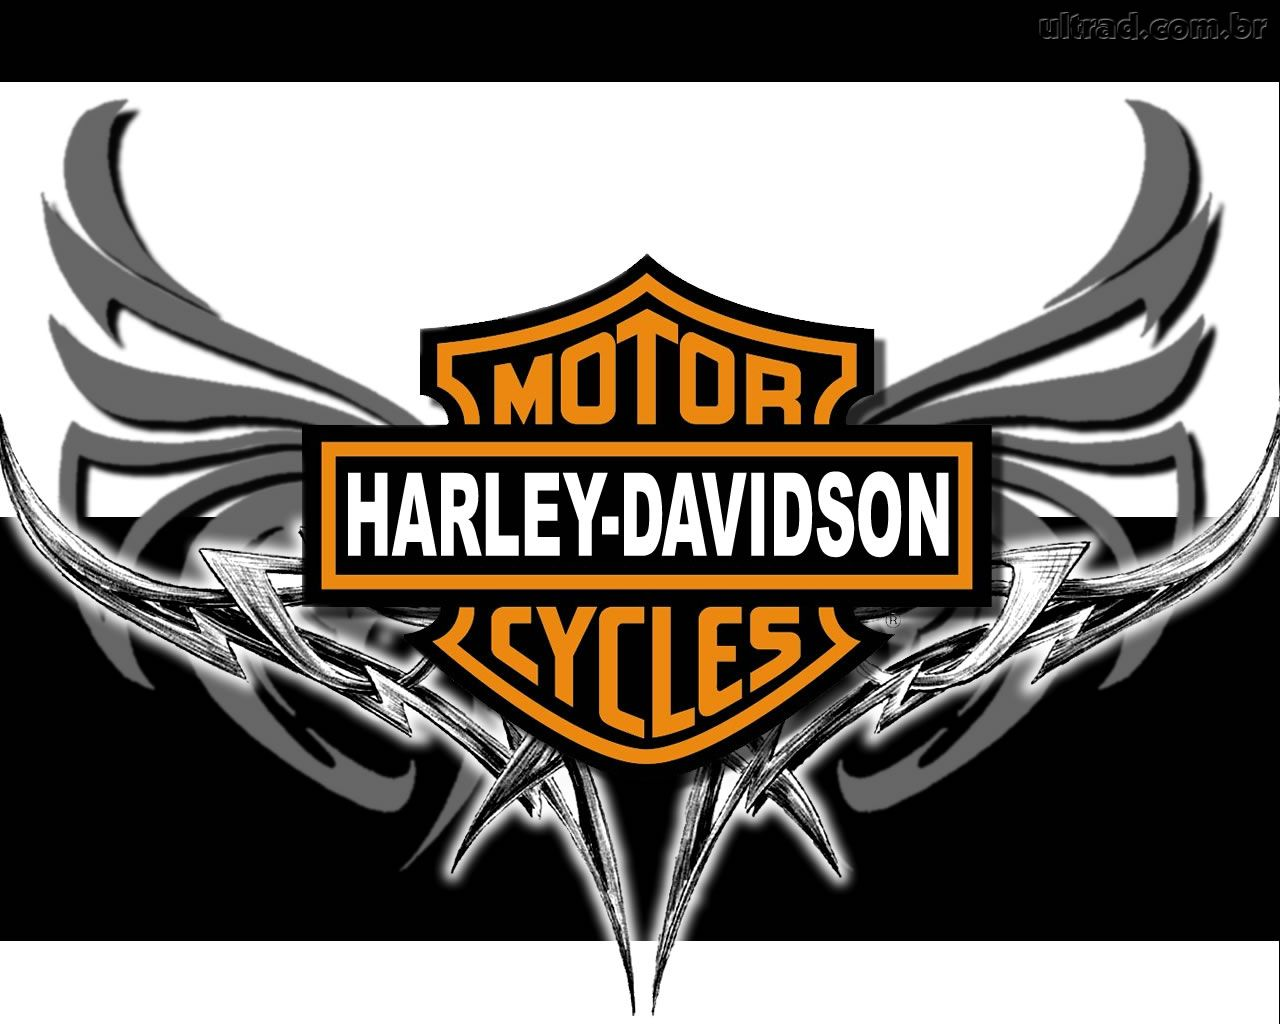 1000 harley davidson wallpaper harley davidson wallpaper collection 3. Black Bedroom Furniture Sets. Home Design Ideas